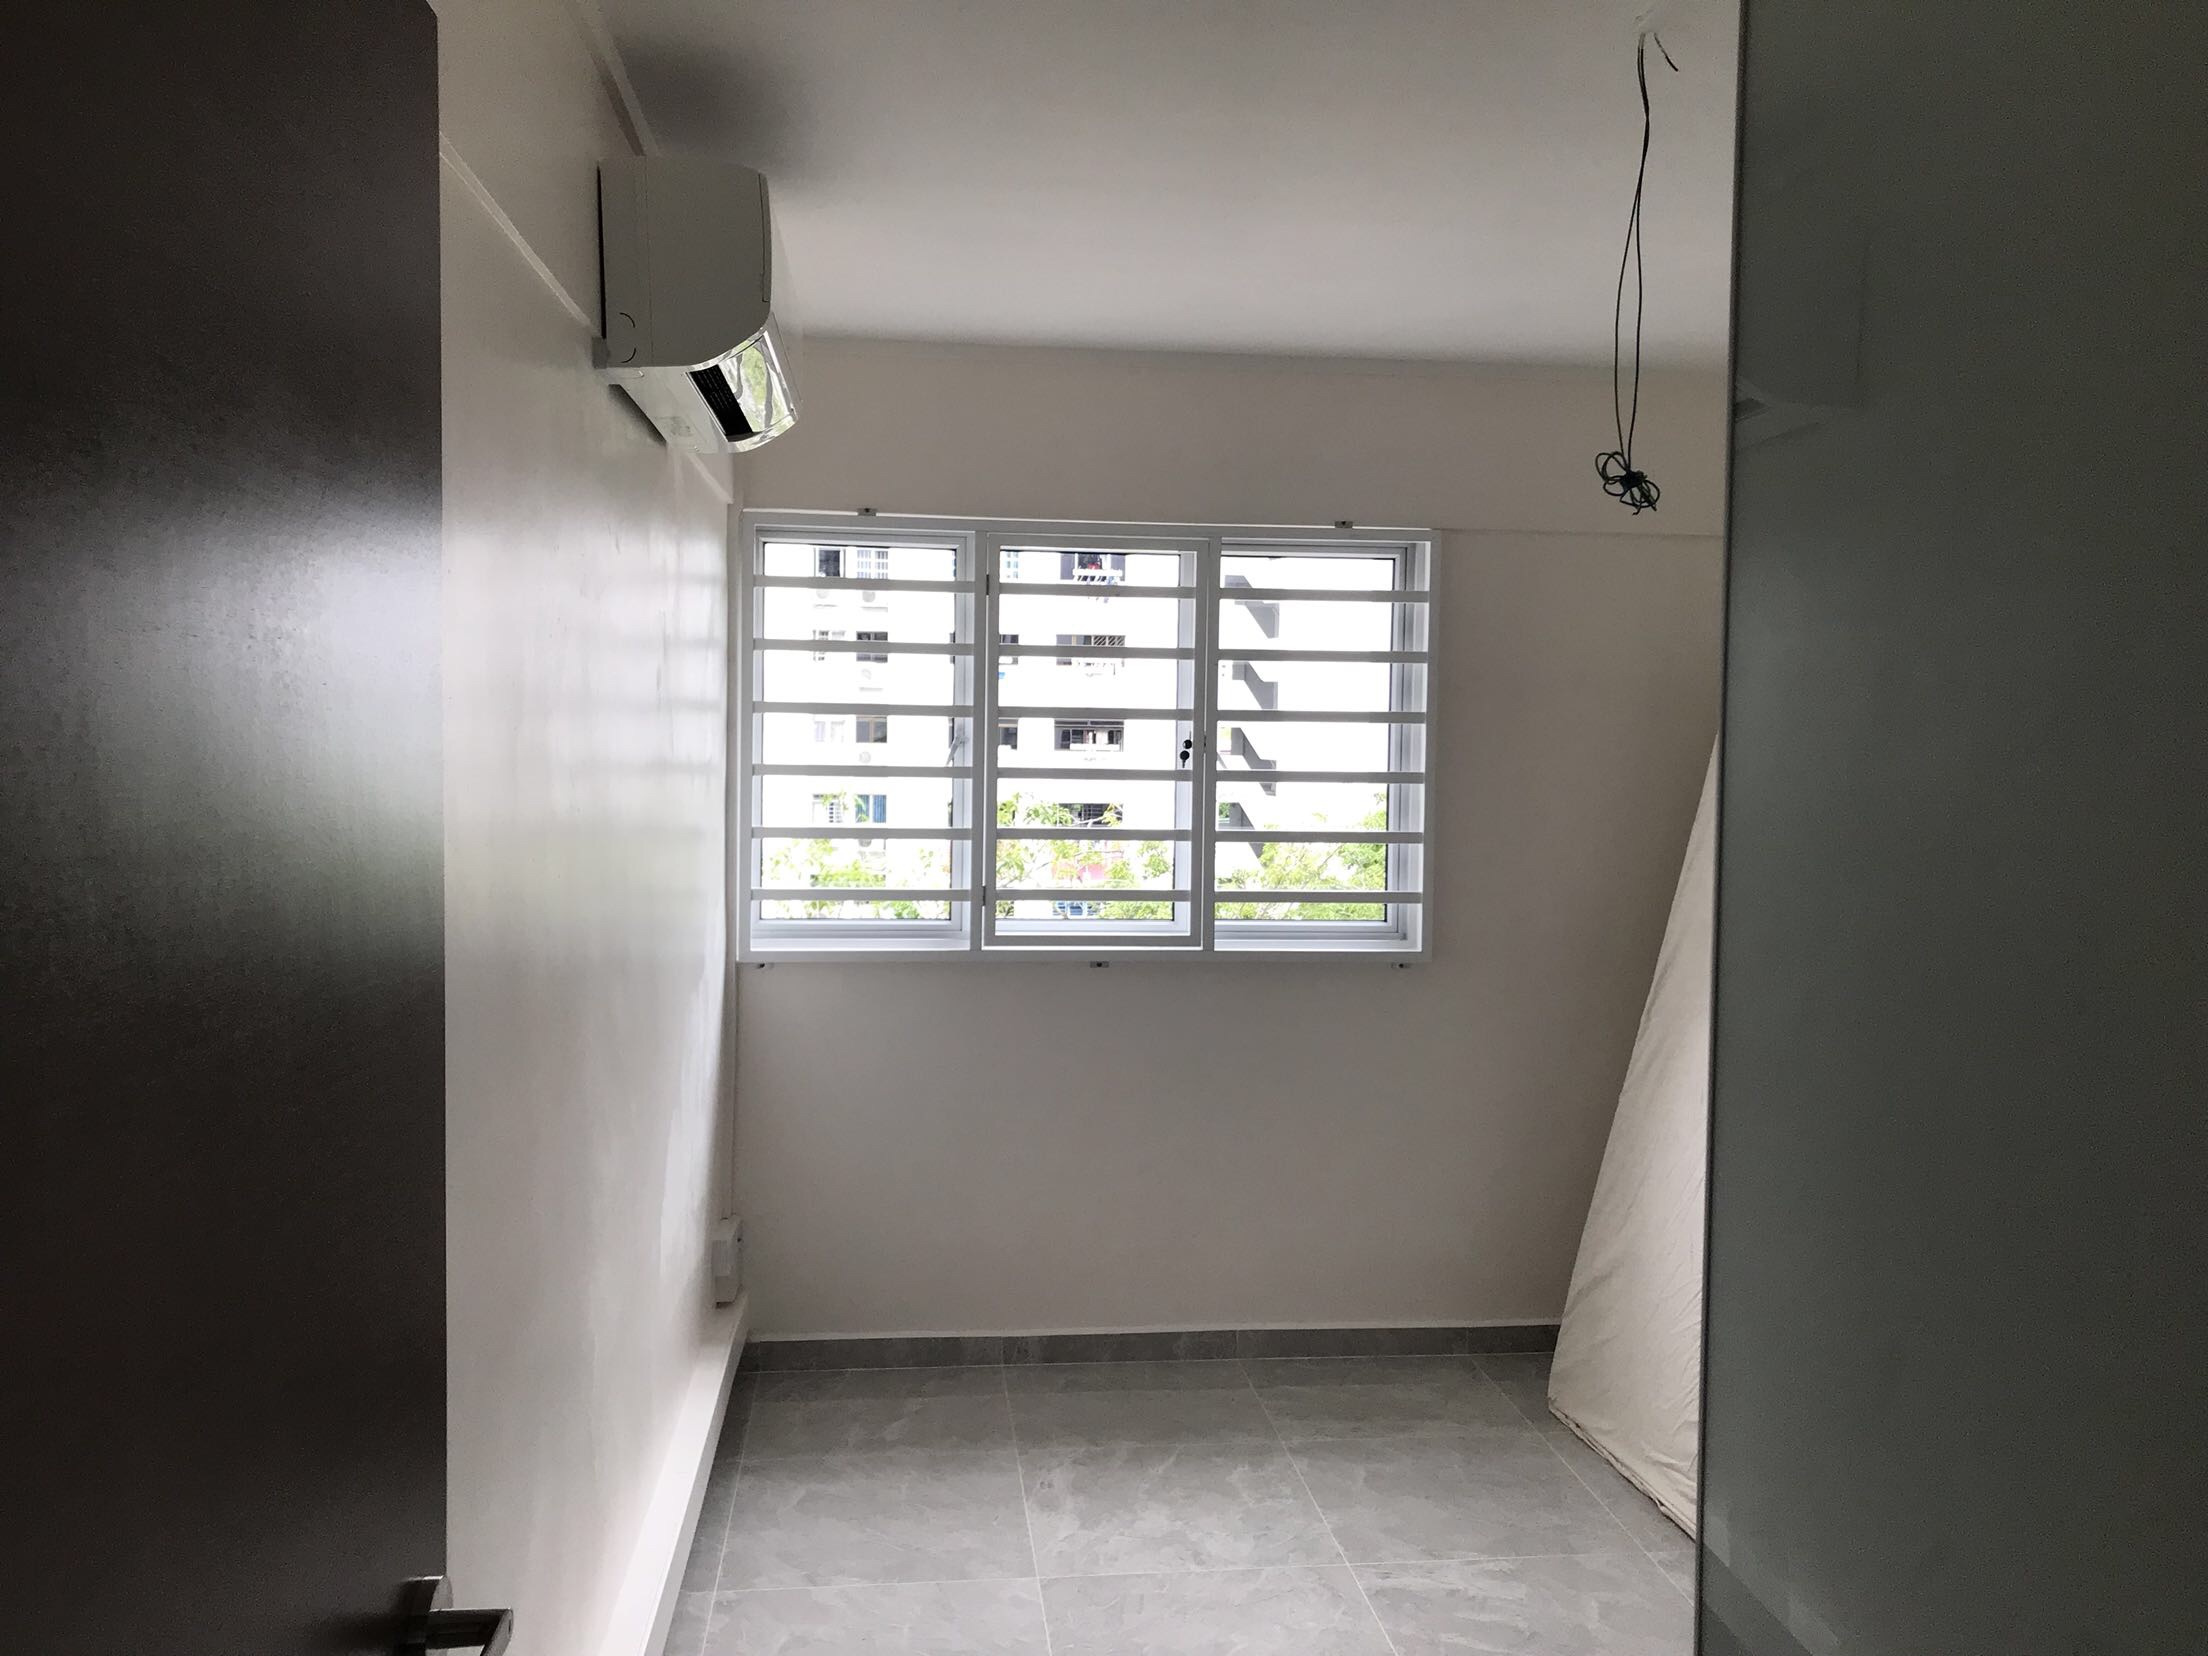 349 Clementi Ave 2, District 05 Singapore